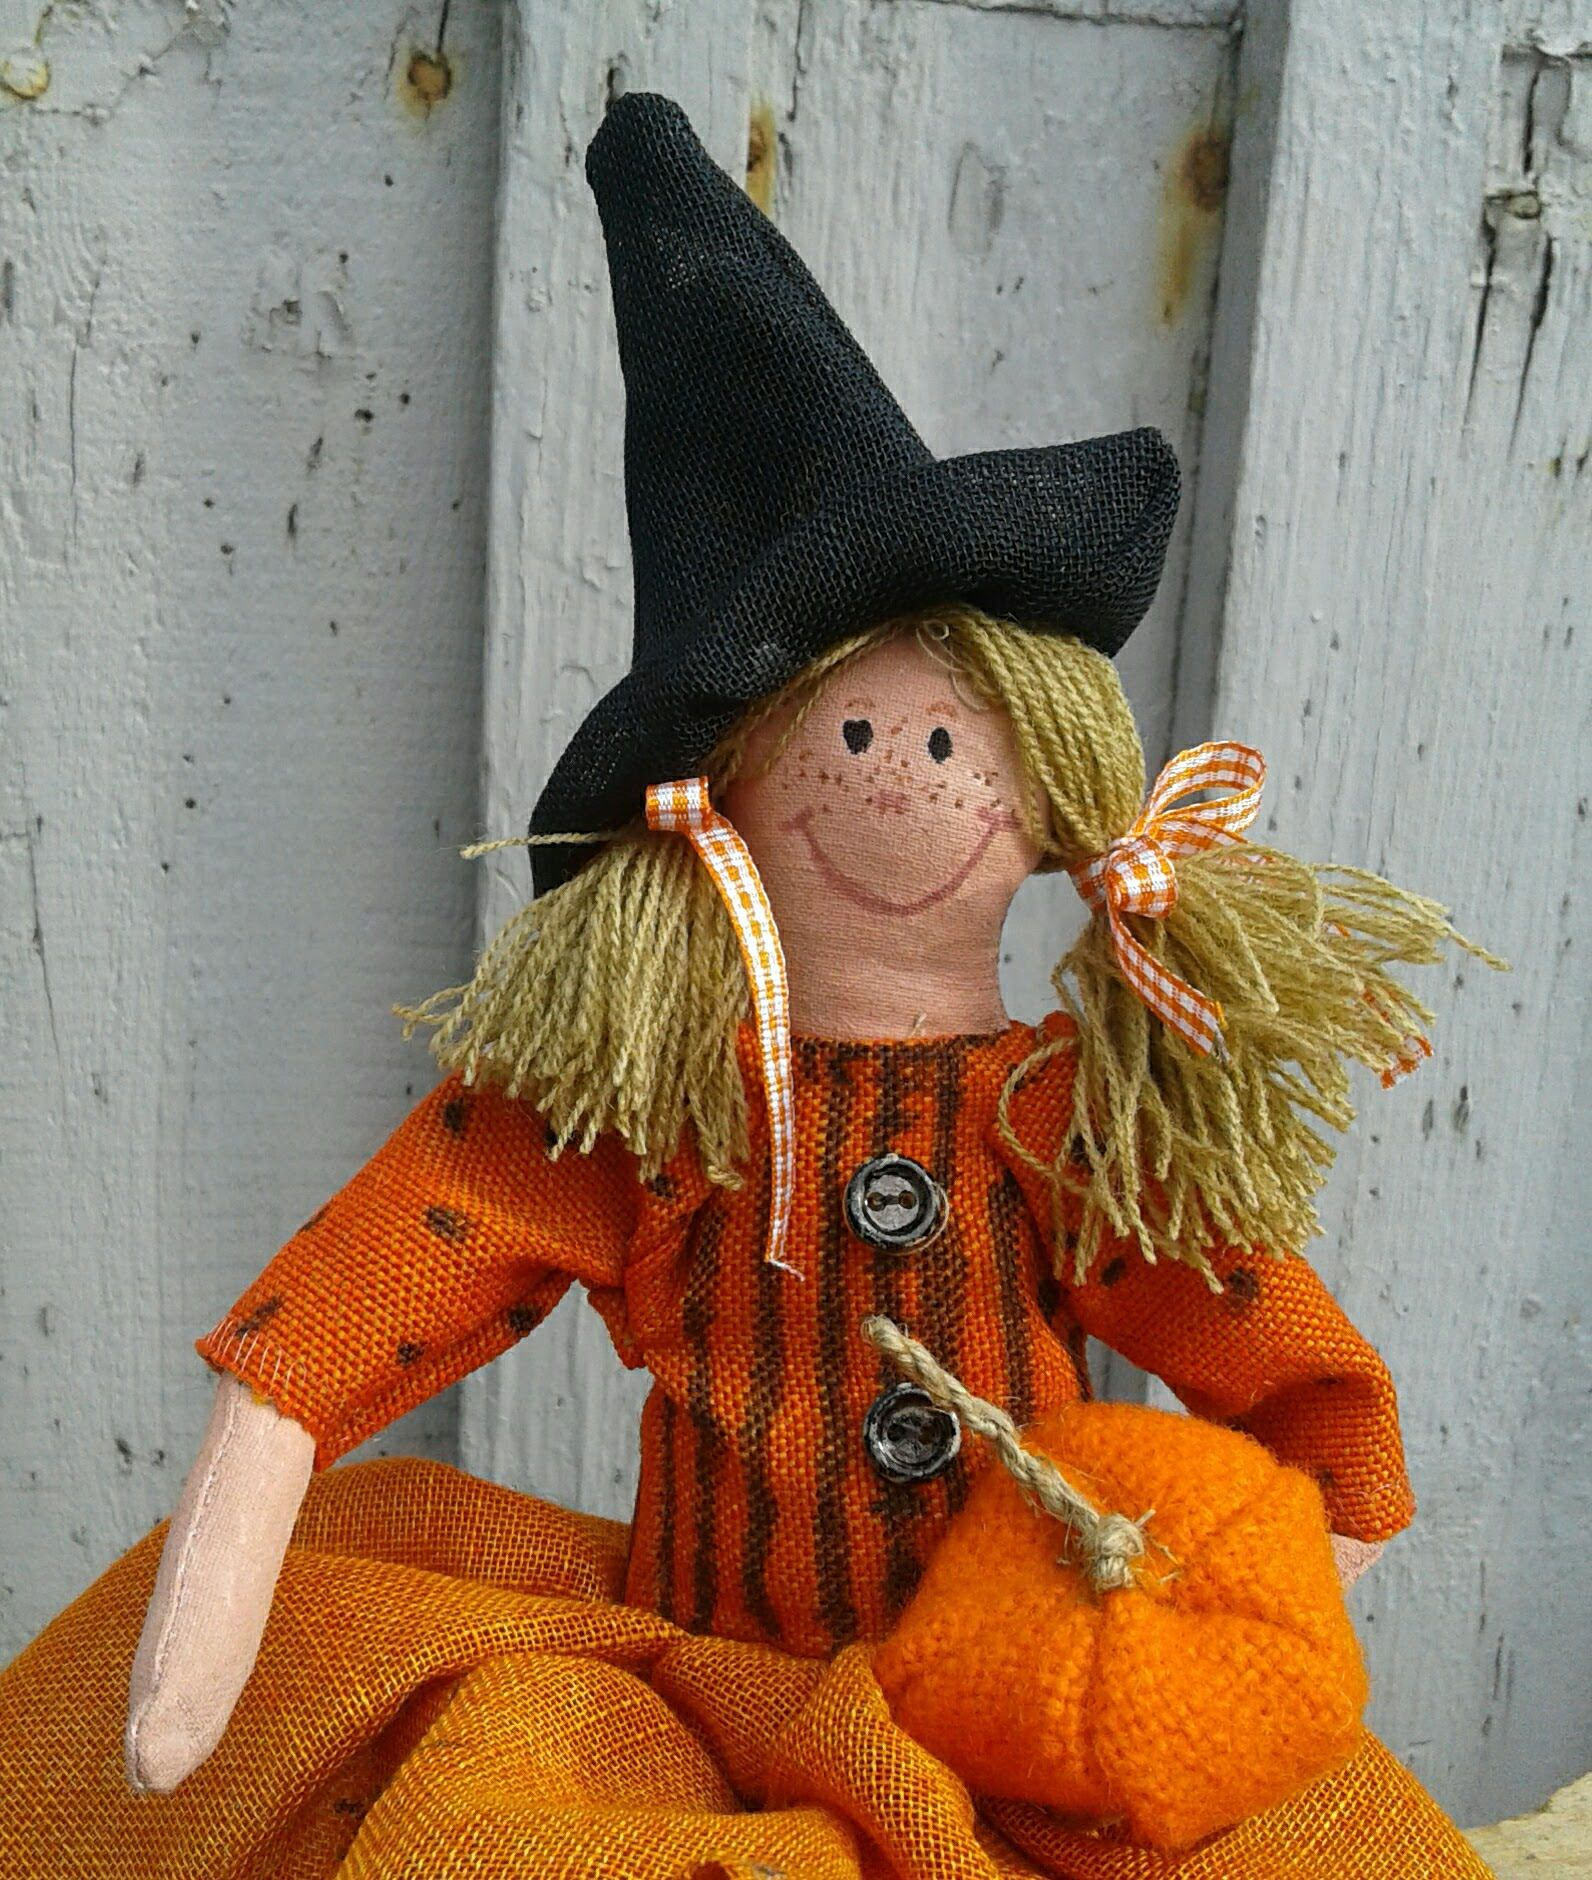 Handmade Doll - Fabric Doll - Cloth Doll - Halloween Decor - Primitive Halloween Decor